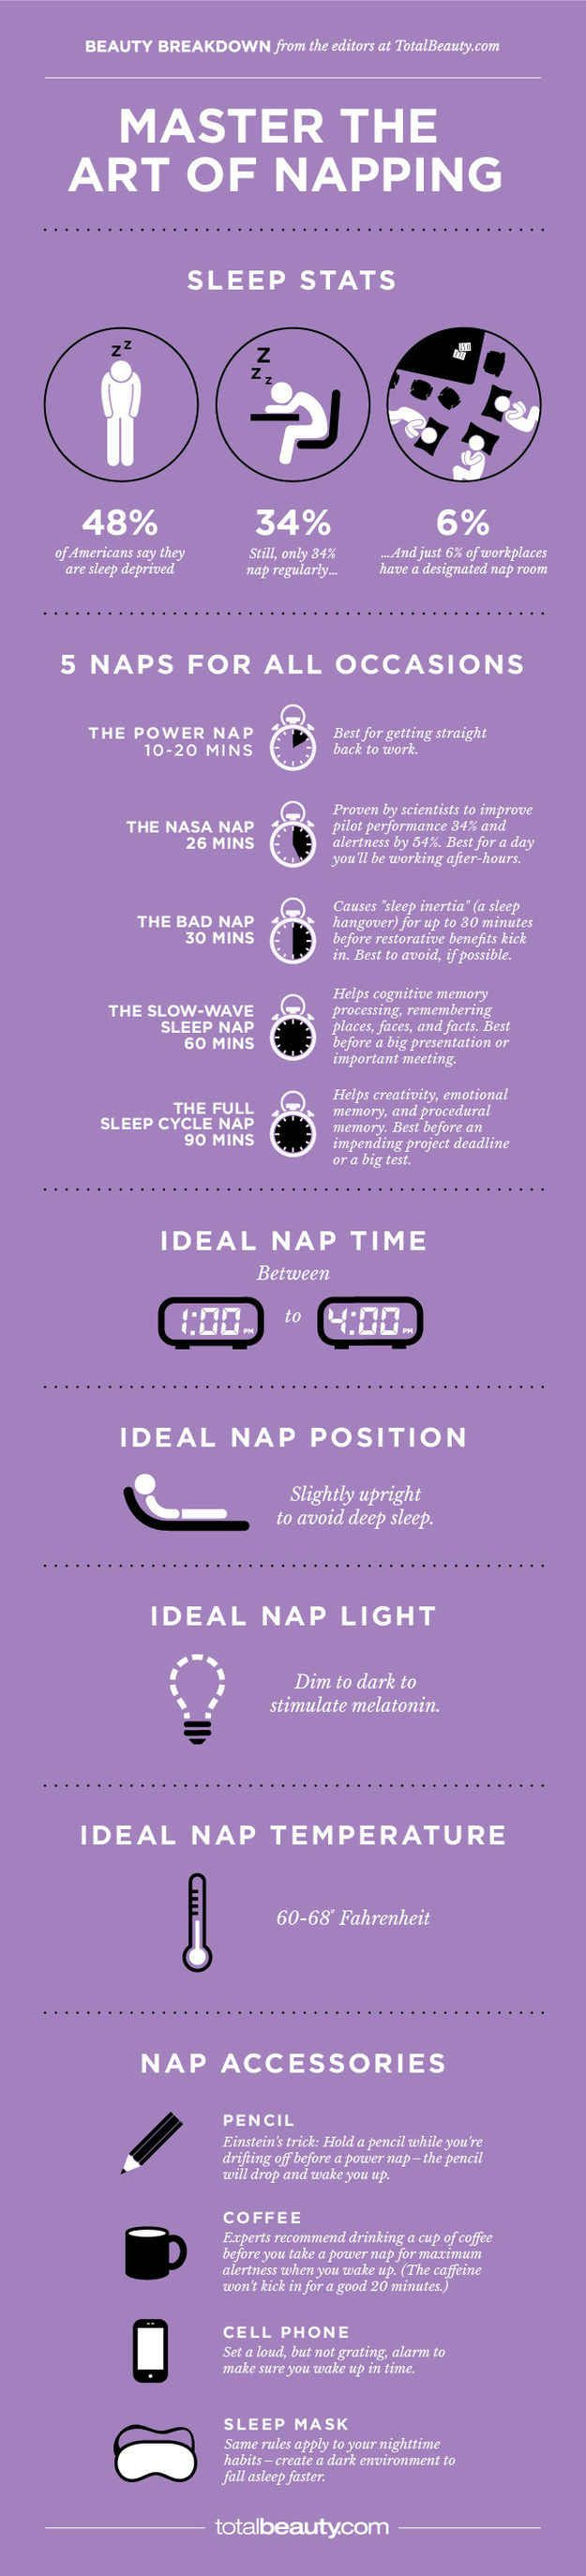 Consider supplementing your nightly rest with naps.